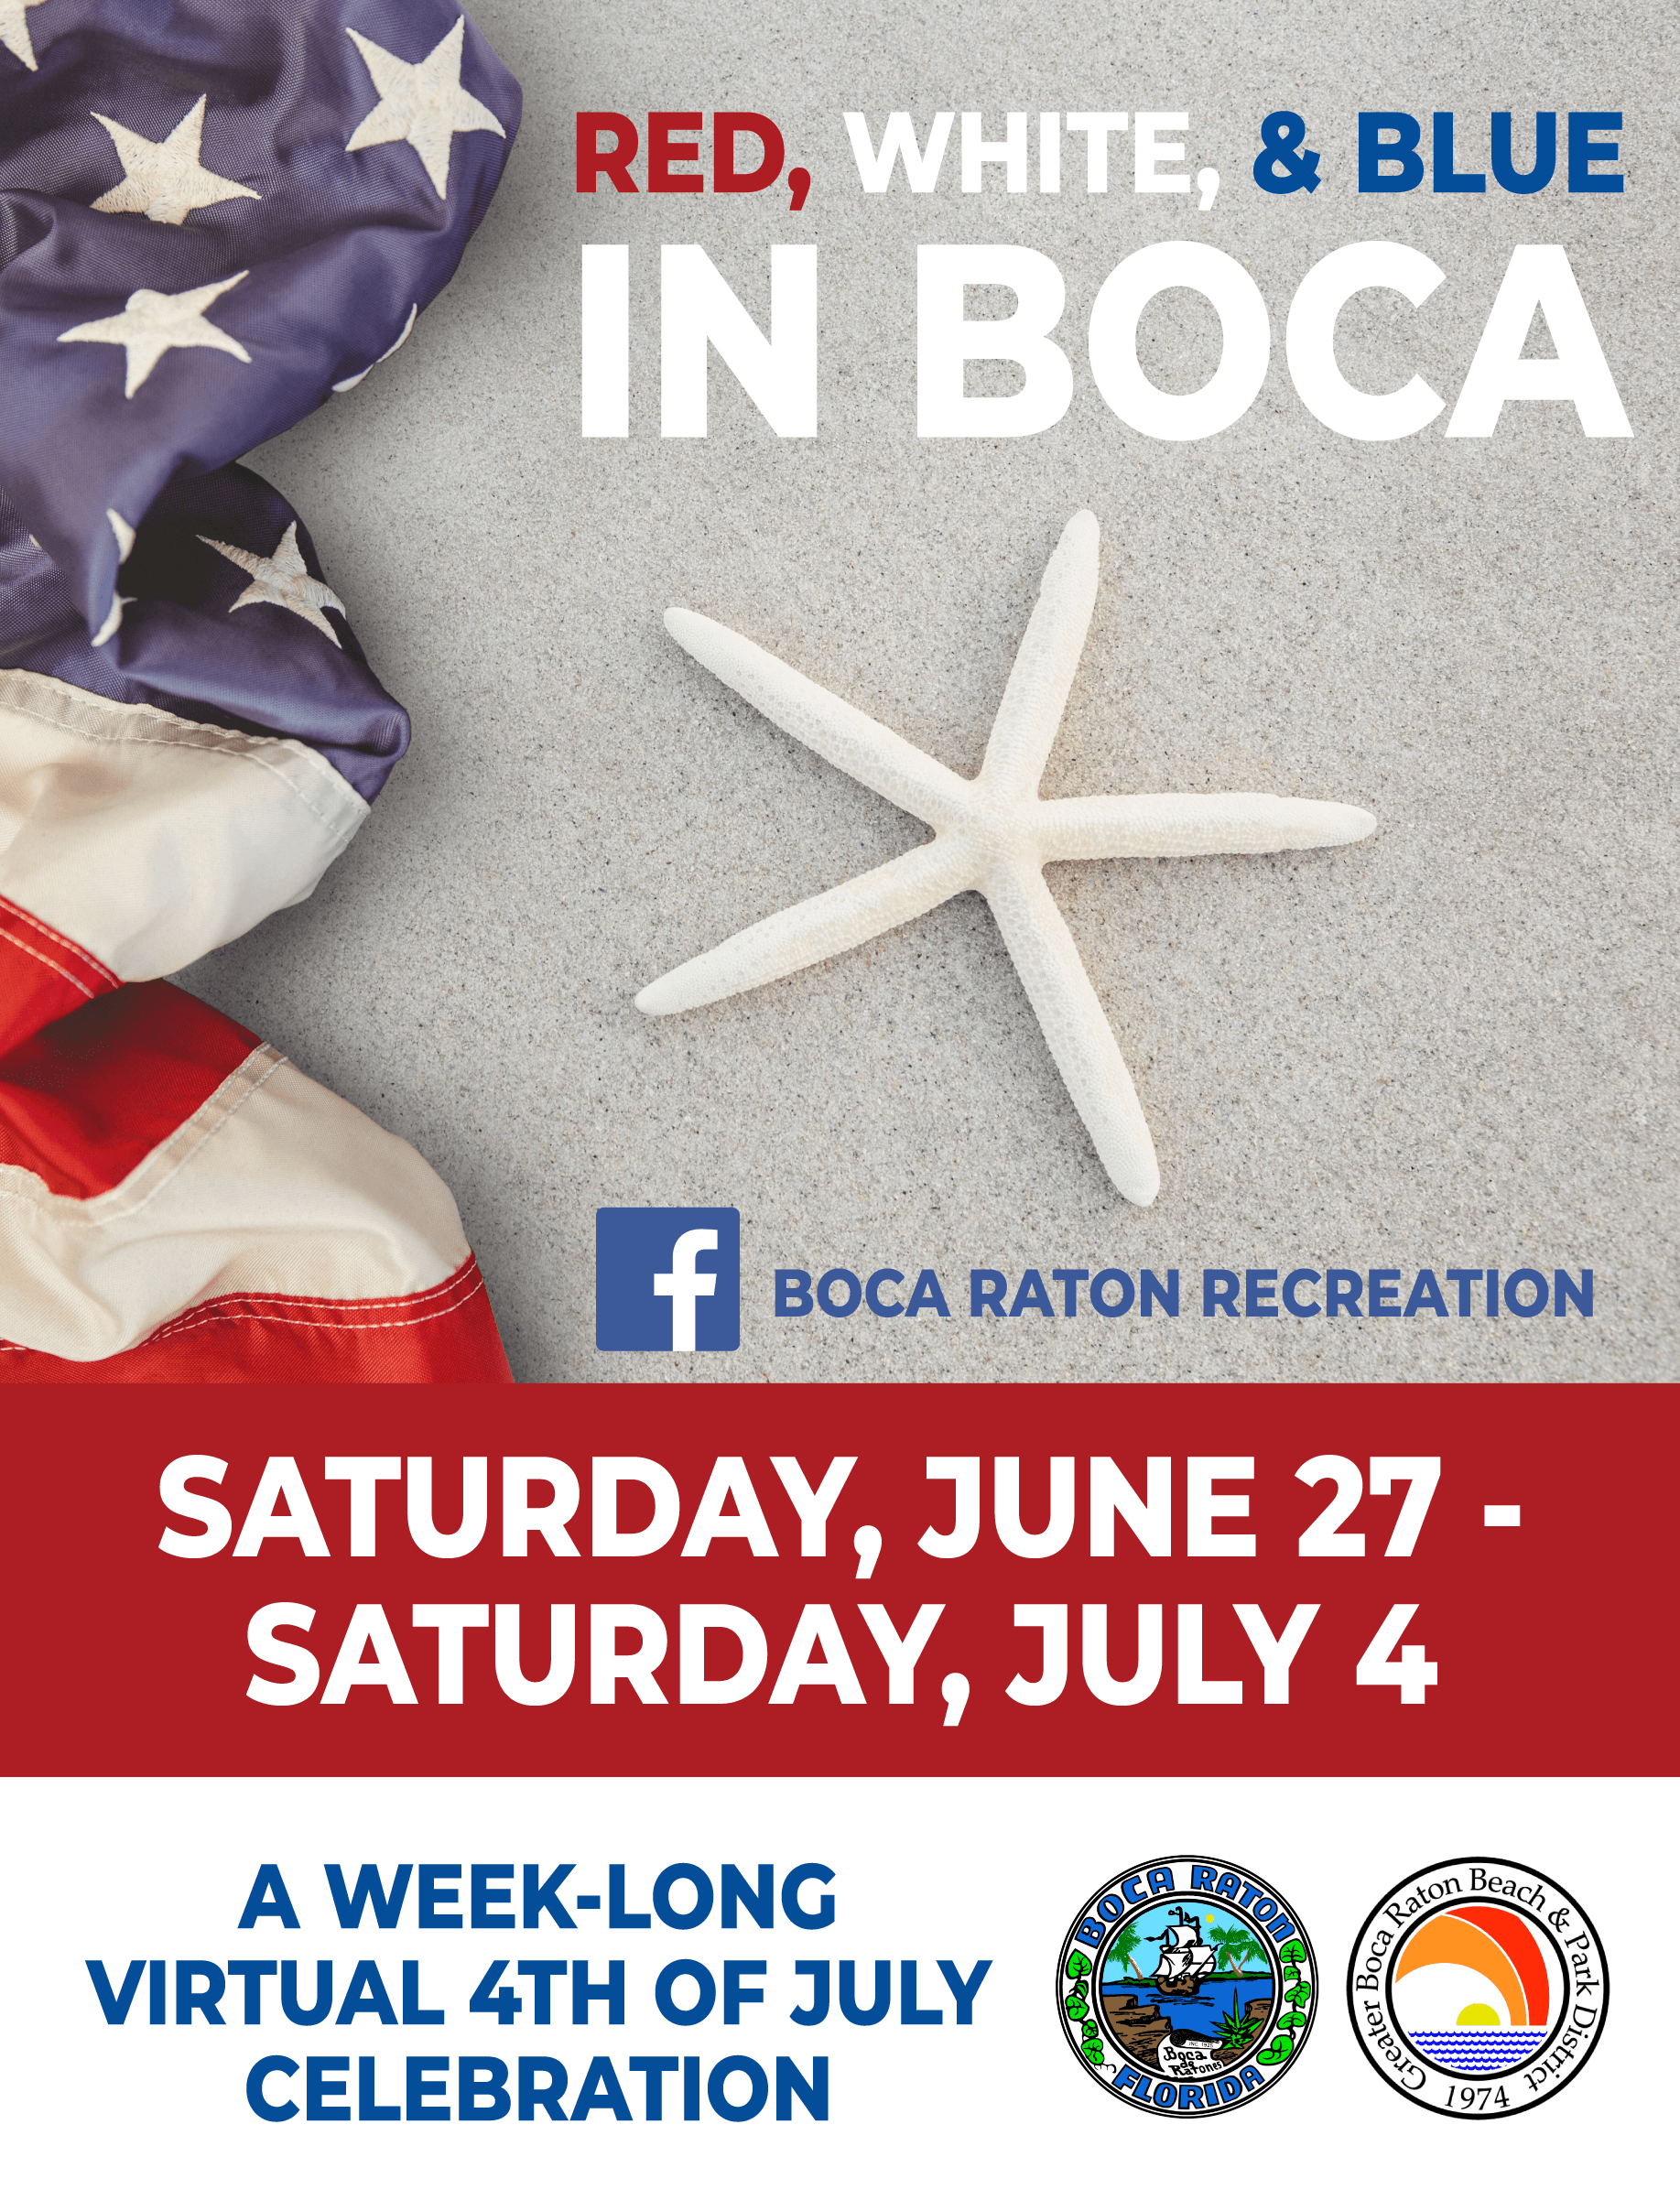 Red, White & Blue in Boca. Saturday, June 27 - Saturday, July 4. A week-long 4th of July Celebration